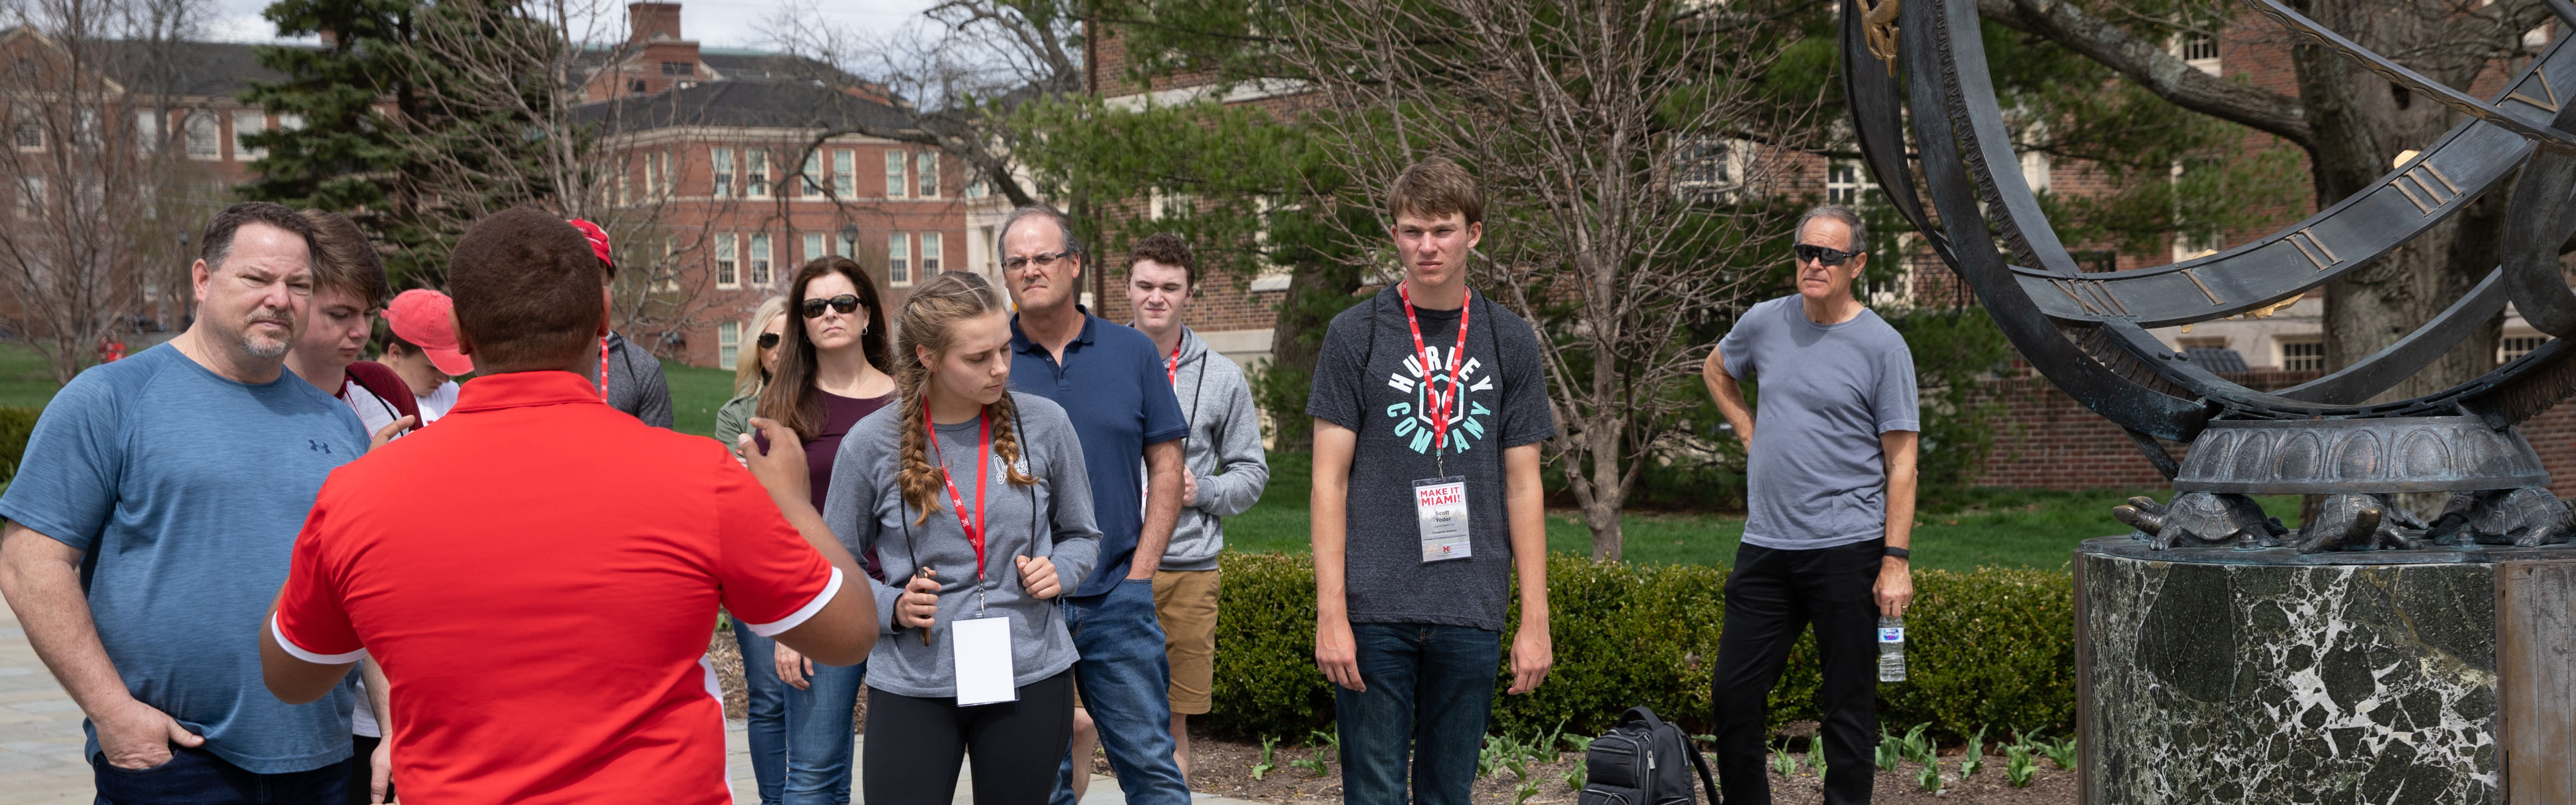 Campus tour at Miami University